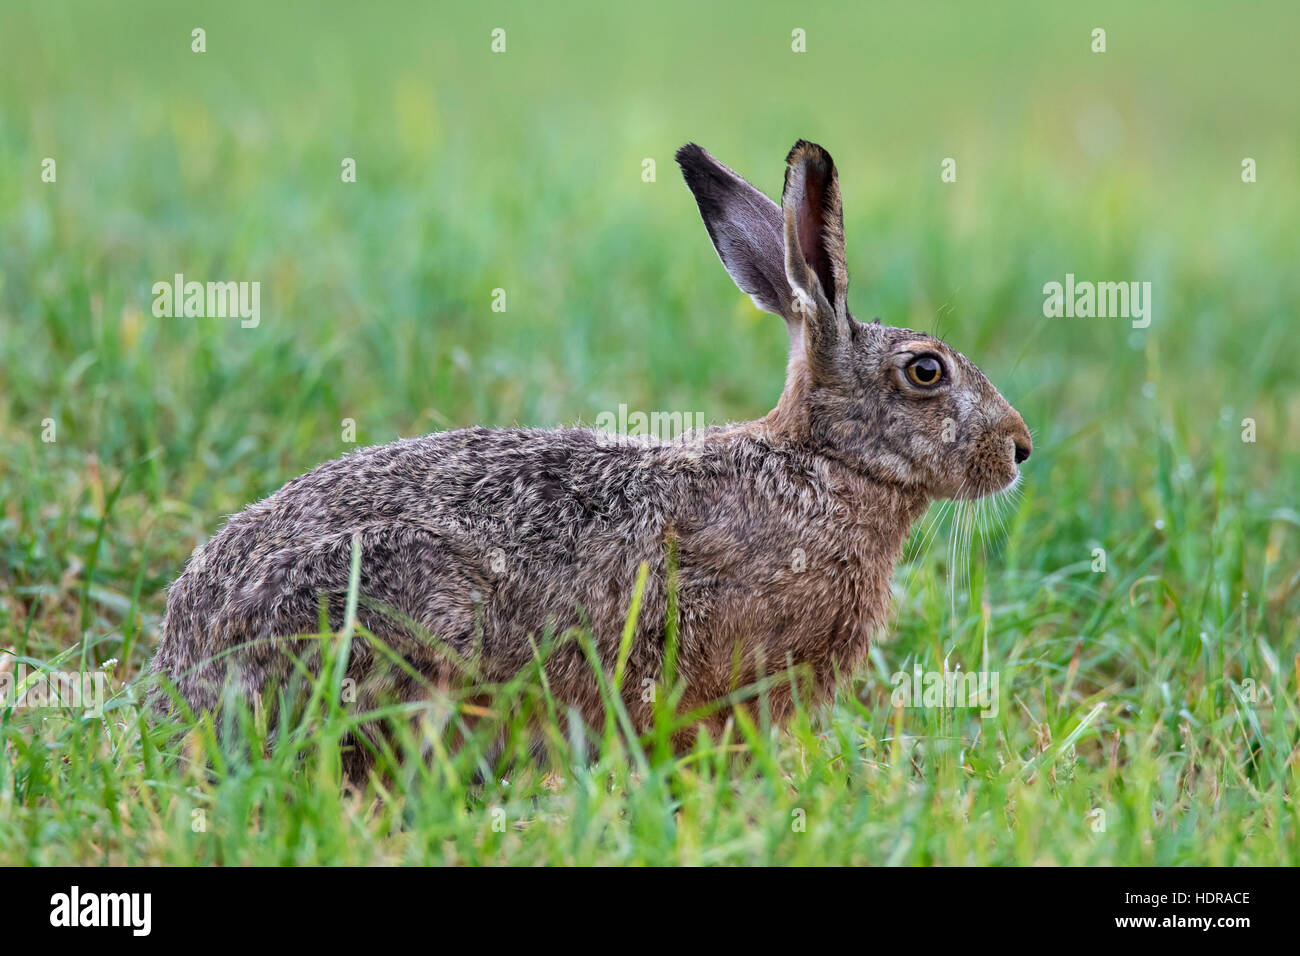 European Brown Hare (Lepus europaeus) sitting in grassland - Stock Image